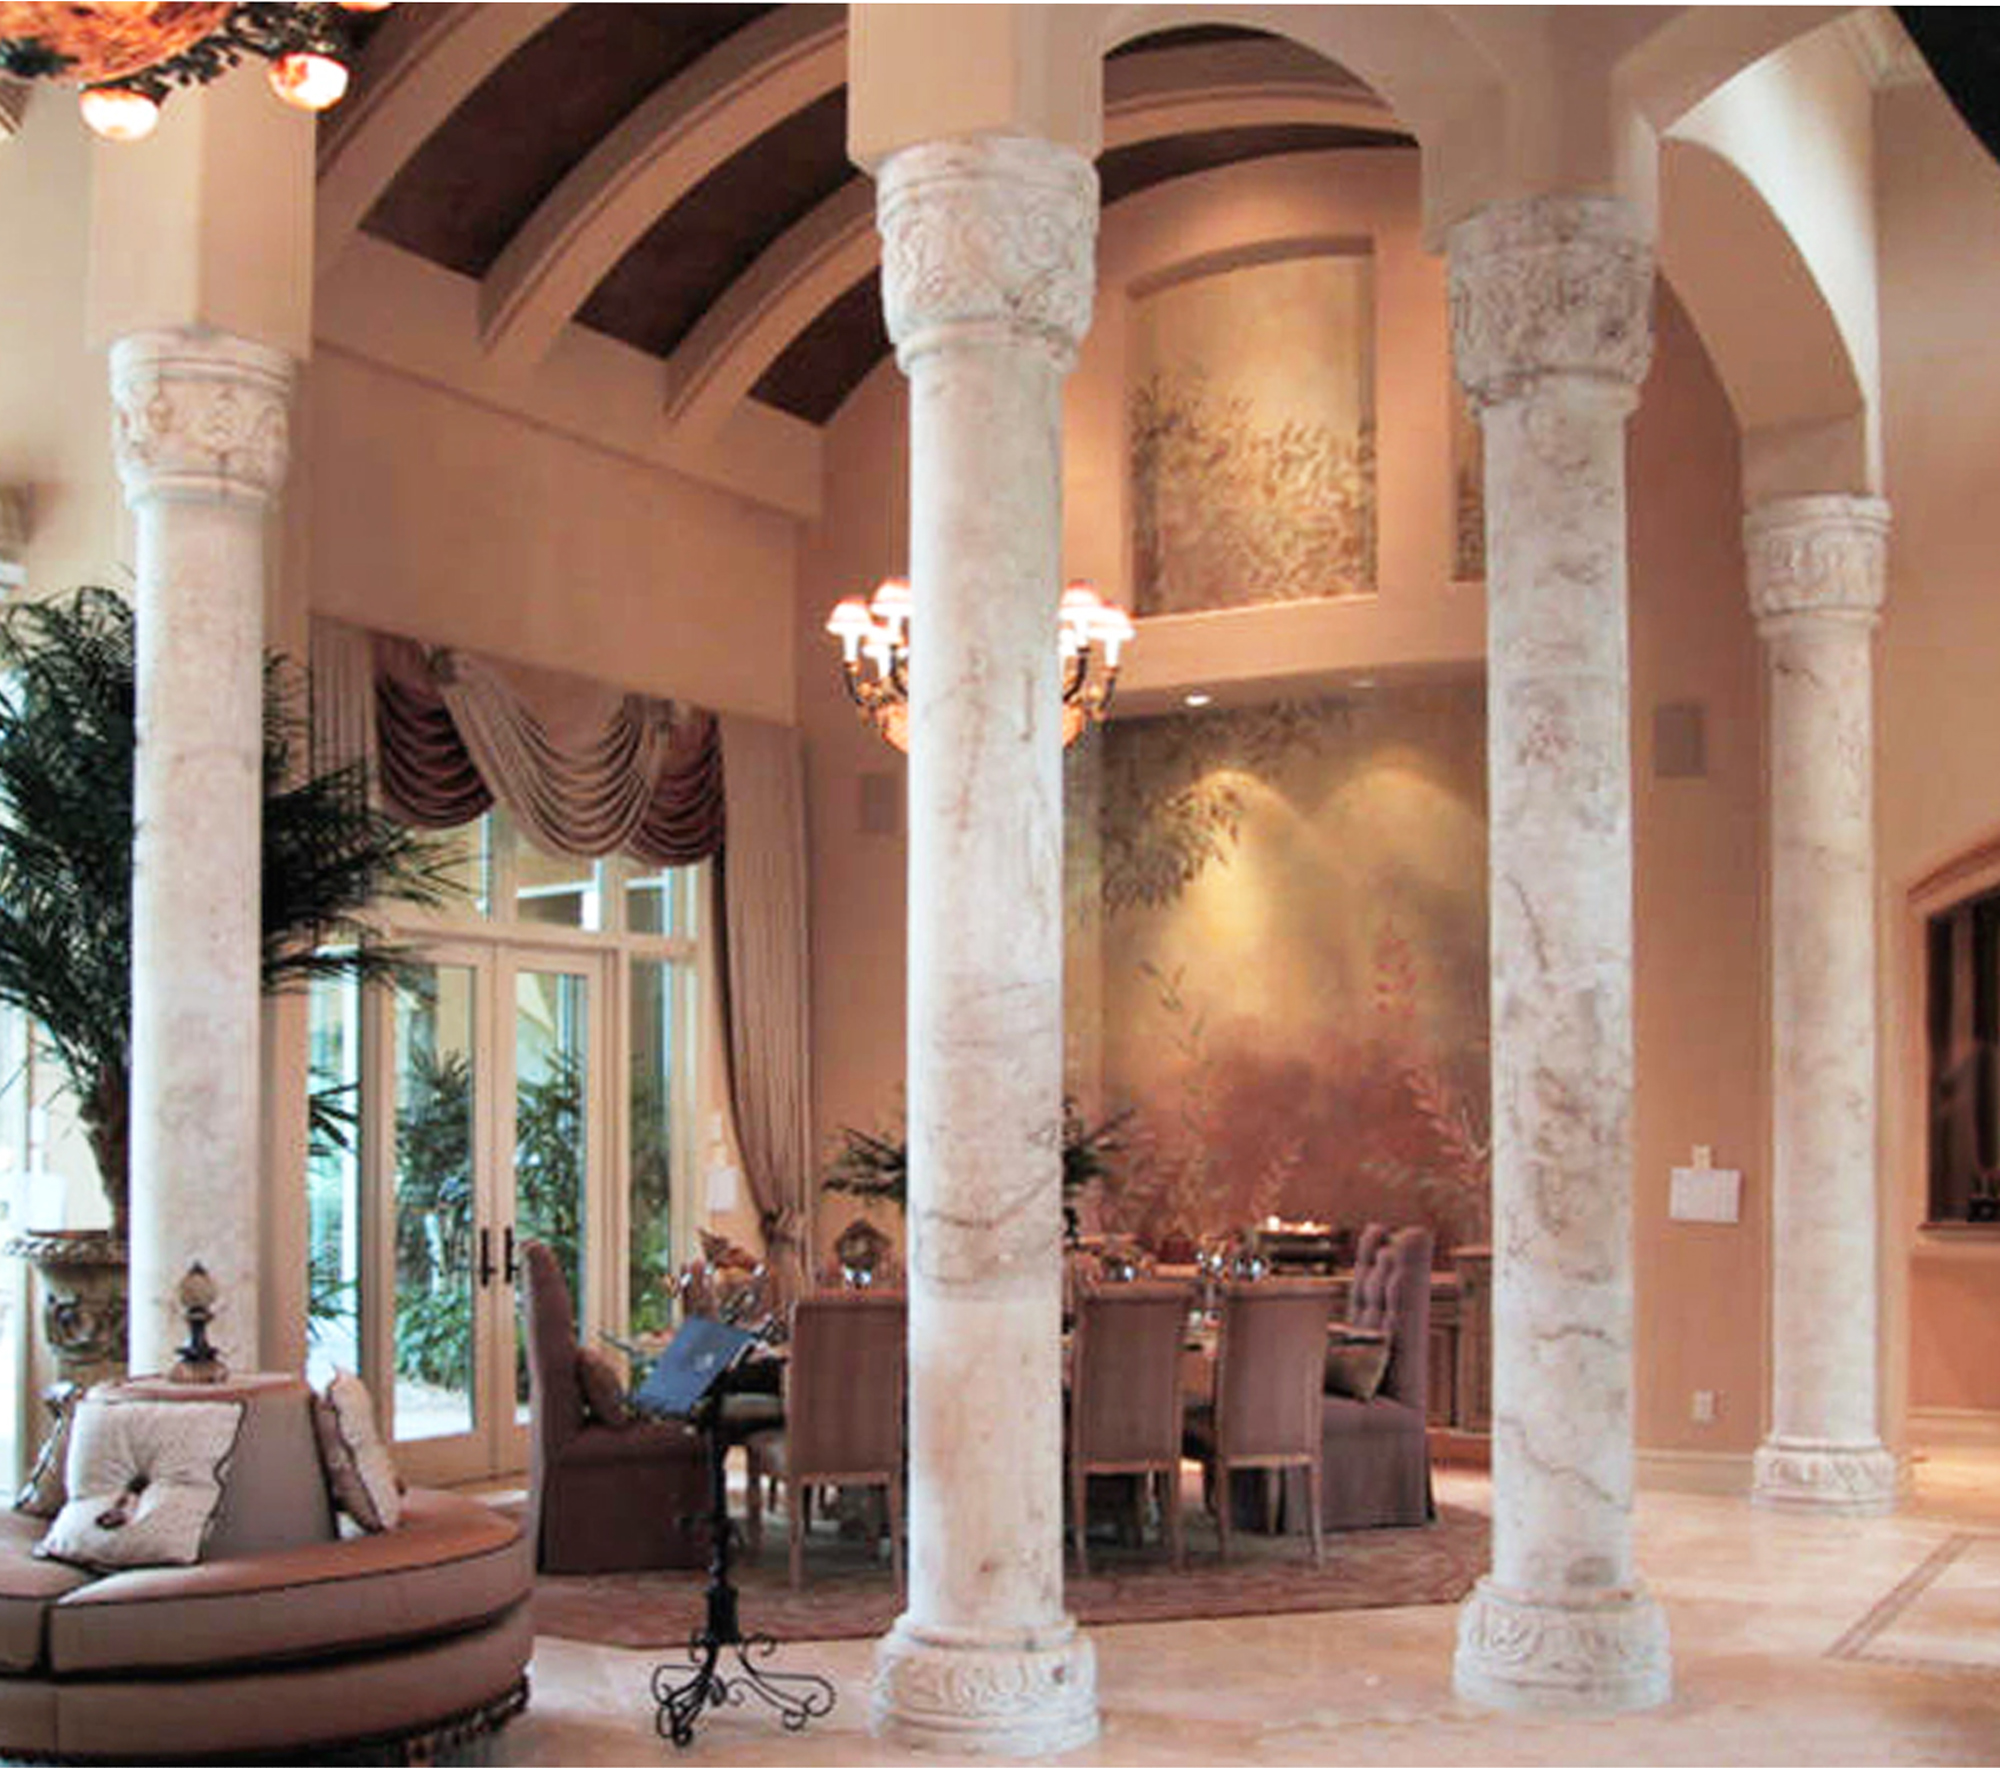 Enrique_Interior Columns_4 custom columns vaulted room_2000x1768.jpg